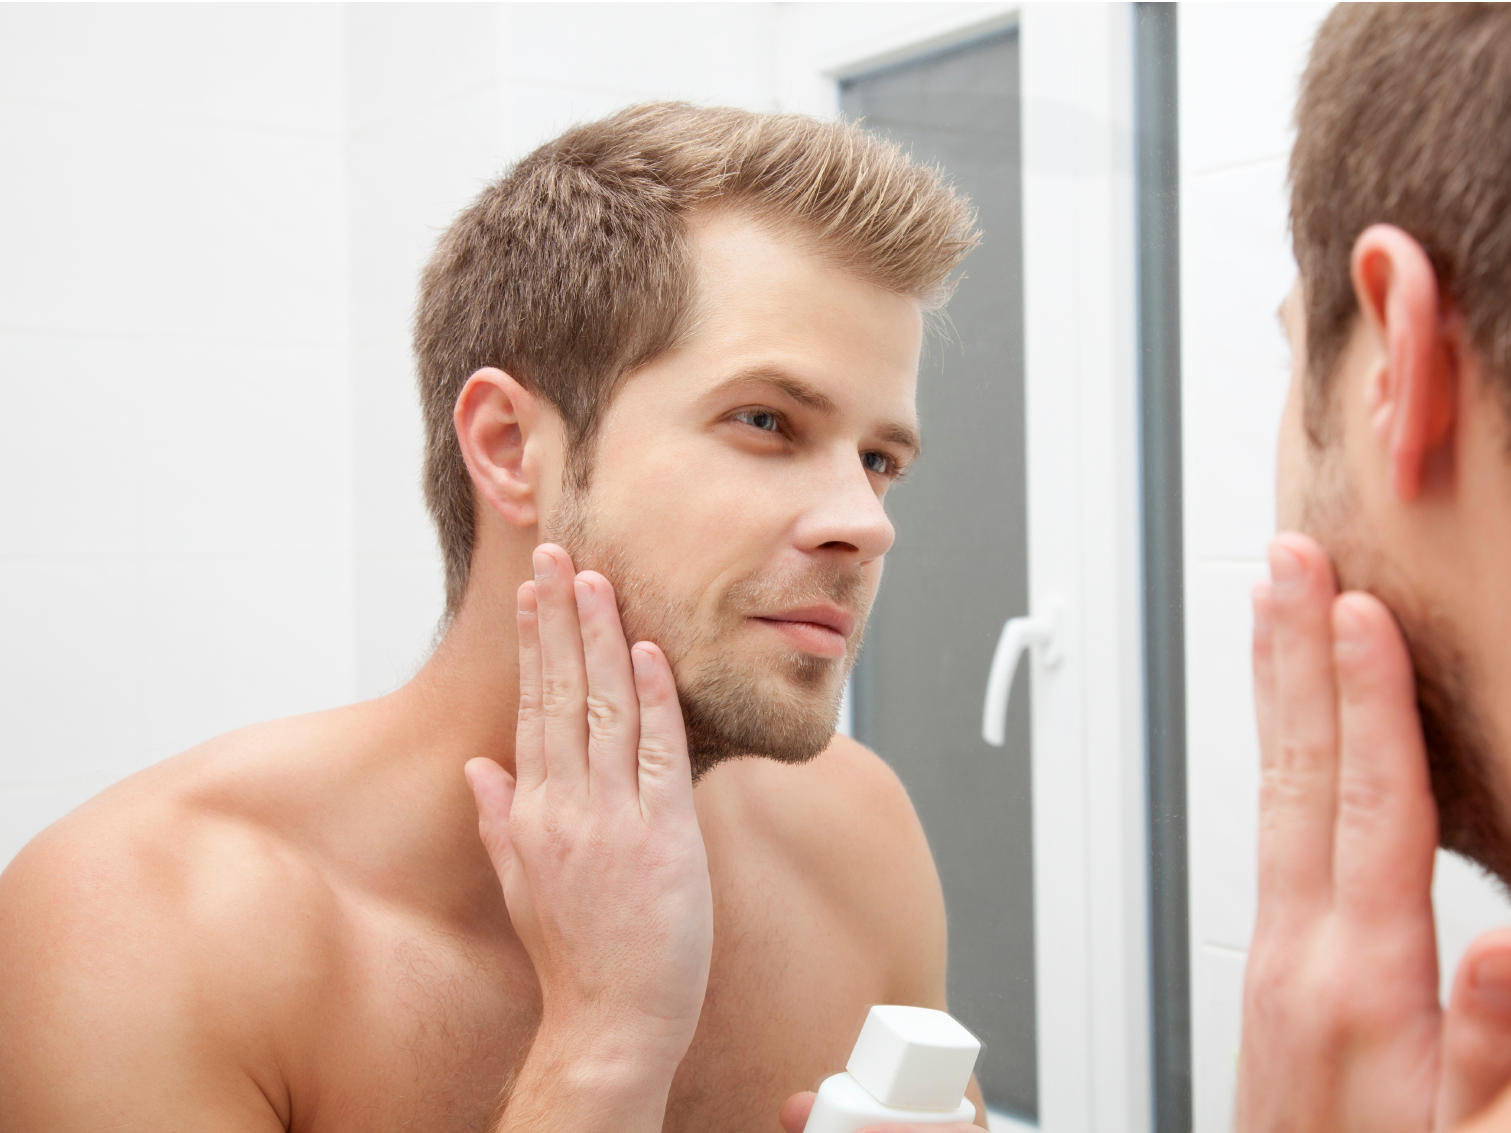 theres-a-reason-why-men-should-only-use-skincare-products-labeled-for-them--and-it-goes-beyond-the-color-of-the-bottle